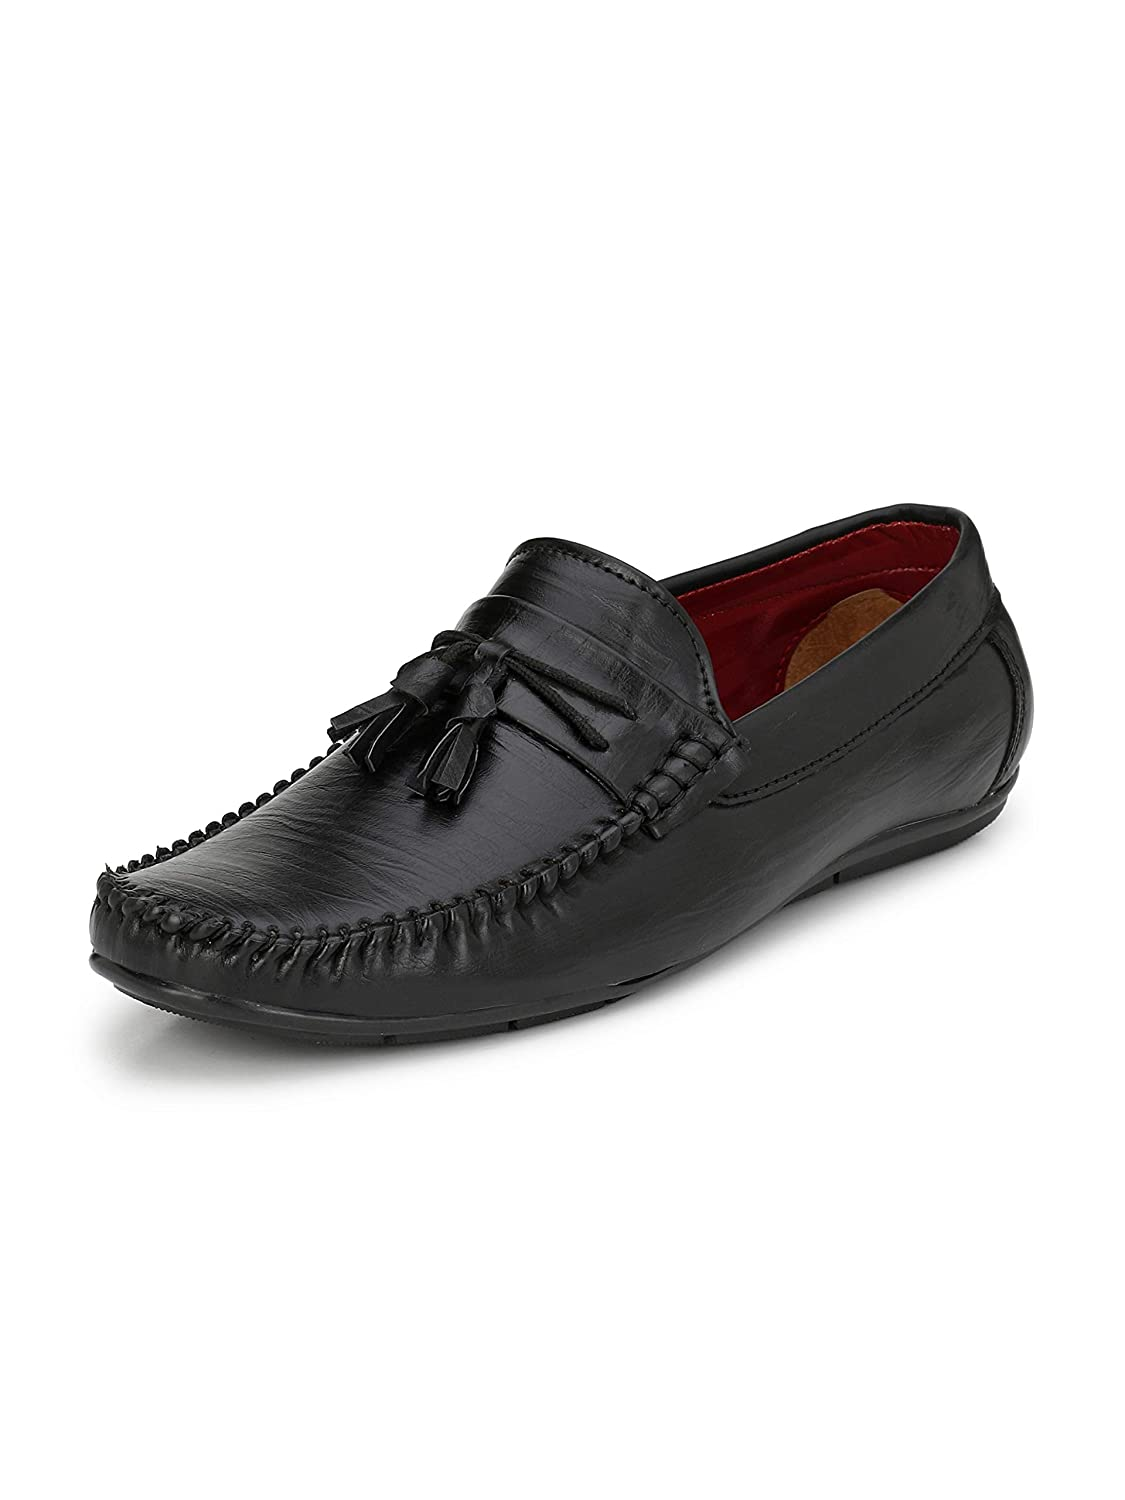 da7c07063e2 Fentacia Men Tassel Loafers(Big Sizes Available Uk6-Uk12)  Buy Online at  Low Prices in India - Amazon.in